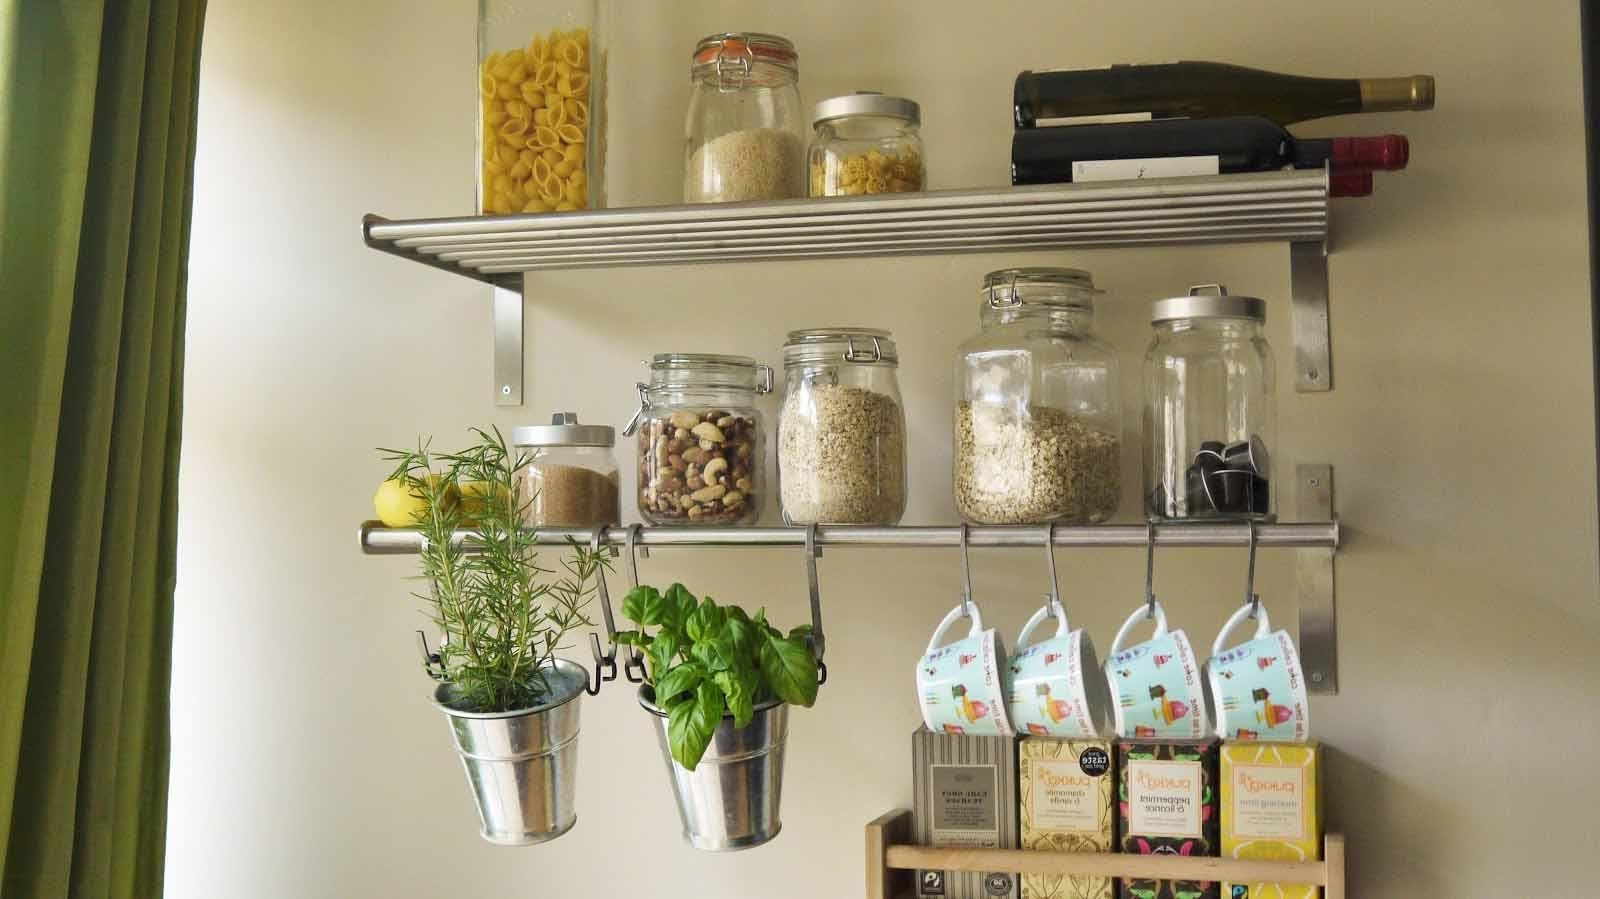 Wall Shelves Design Metal Kitchen Wall Shelves Ideas Wall Metal Regarding Kitchen Wall Shelves (#12 of 12)